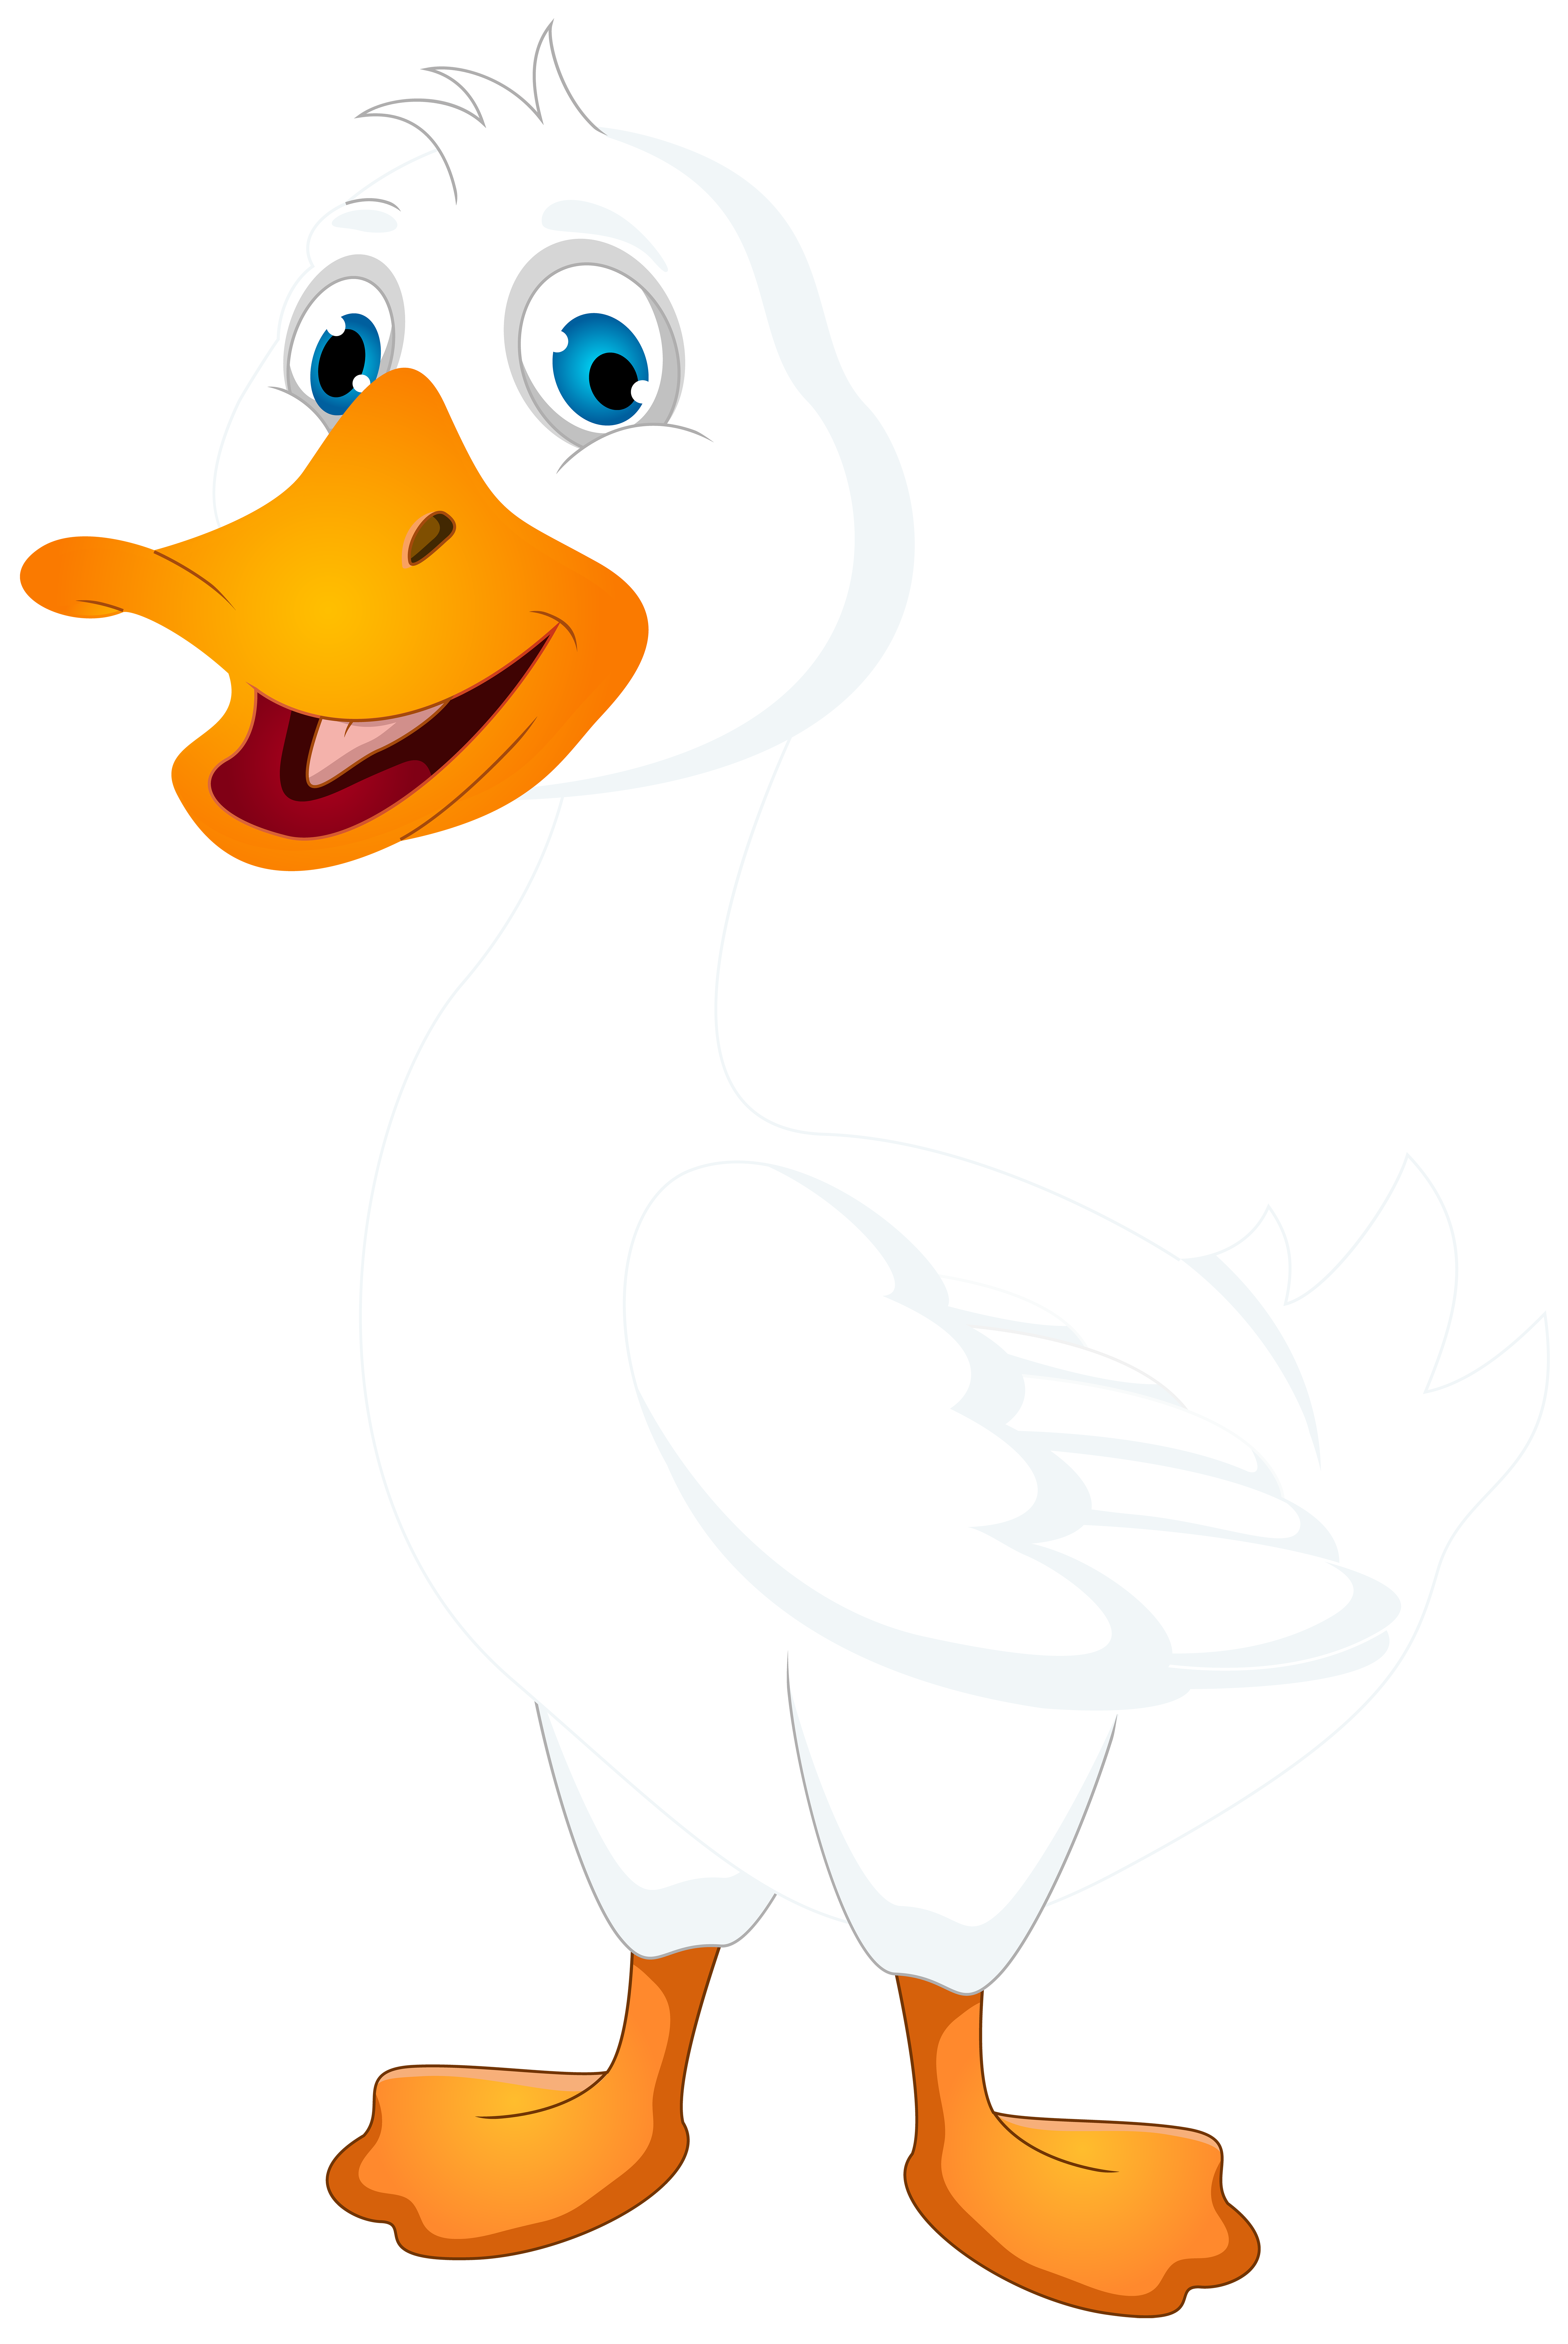 White Duck Cartoon PNG Clip Art Image.